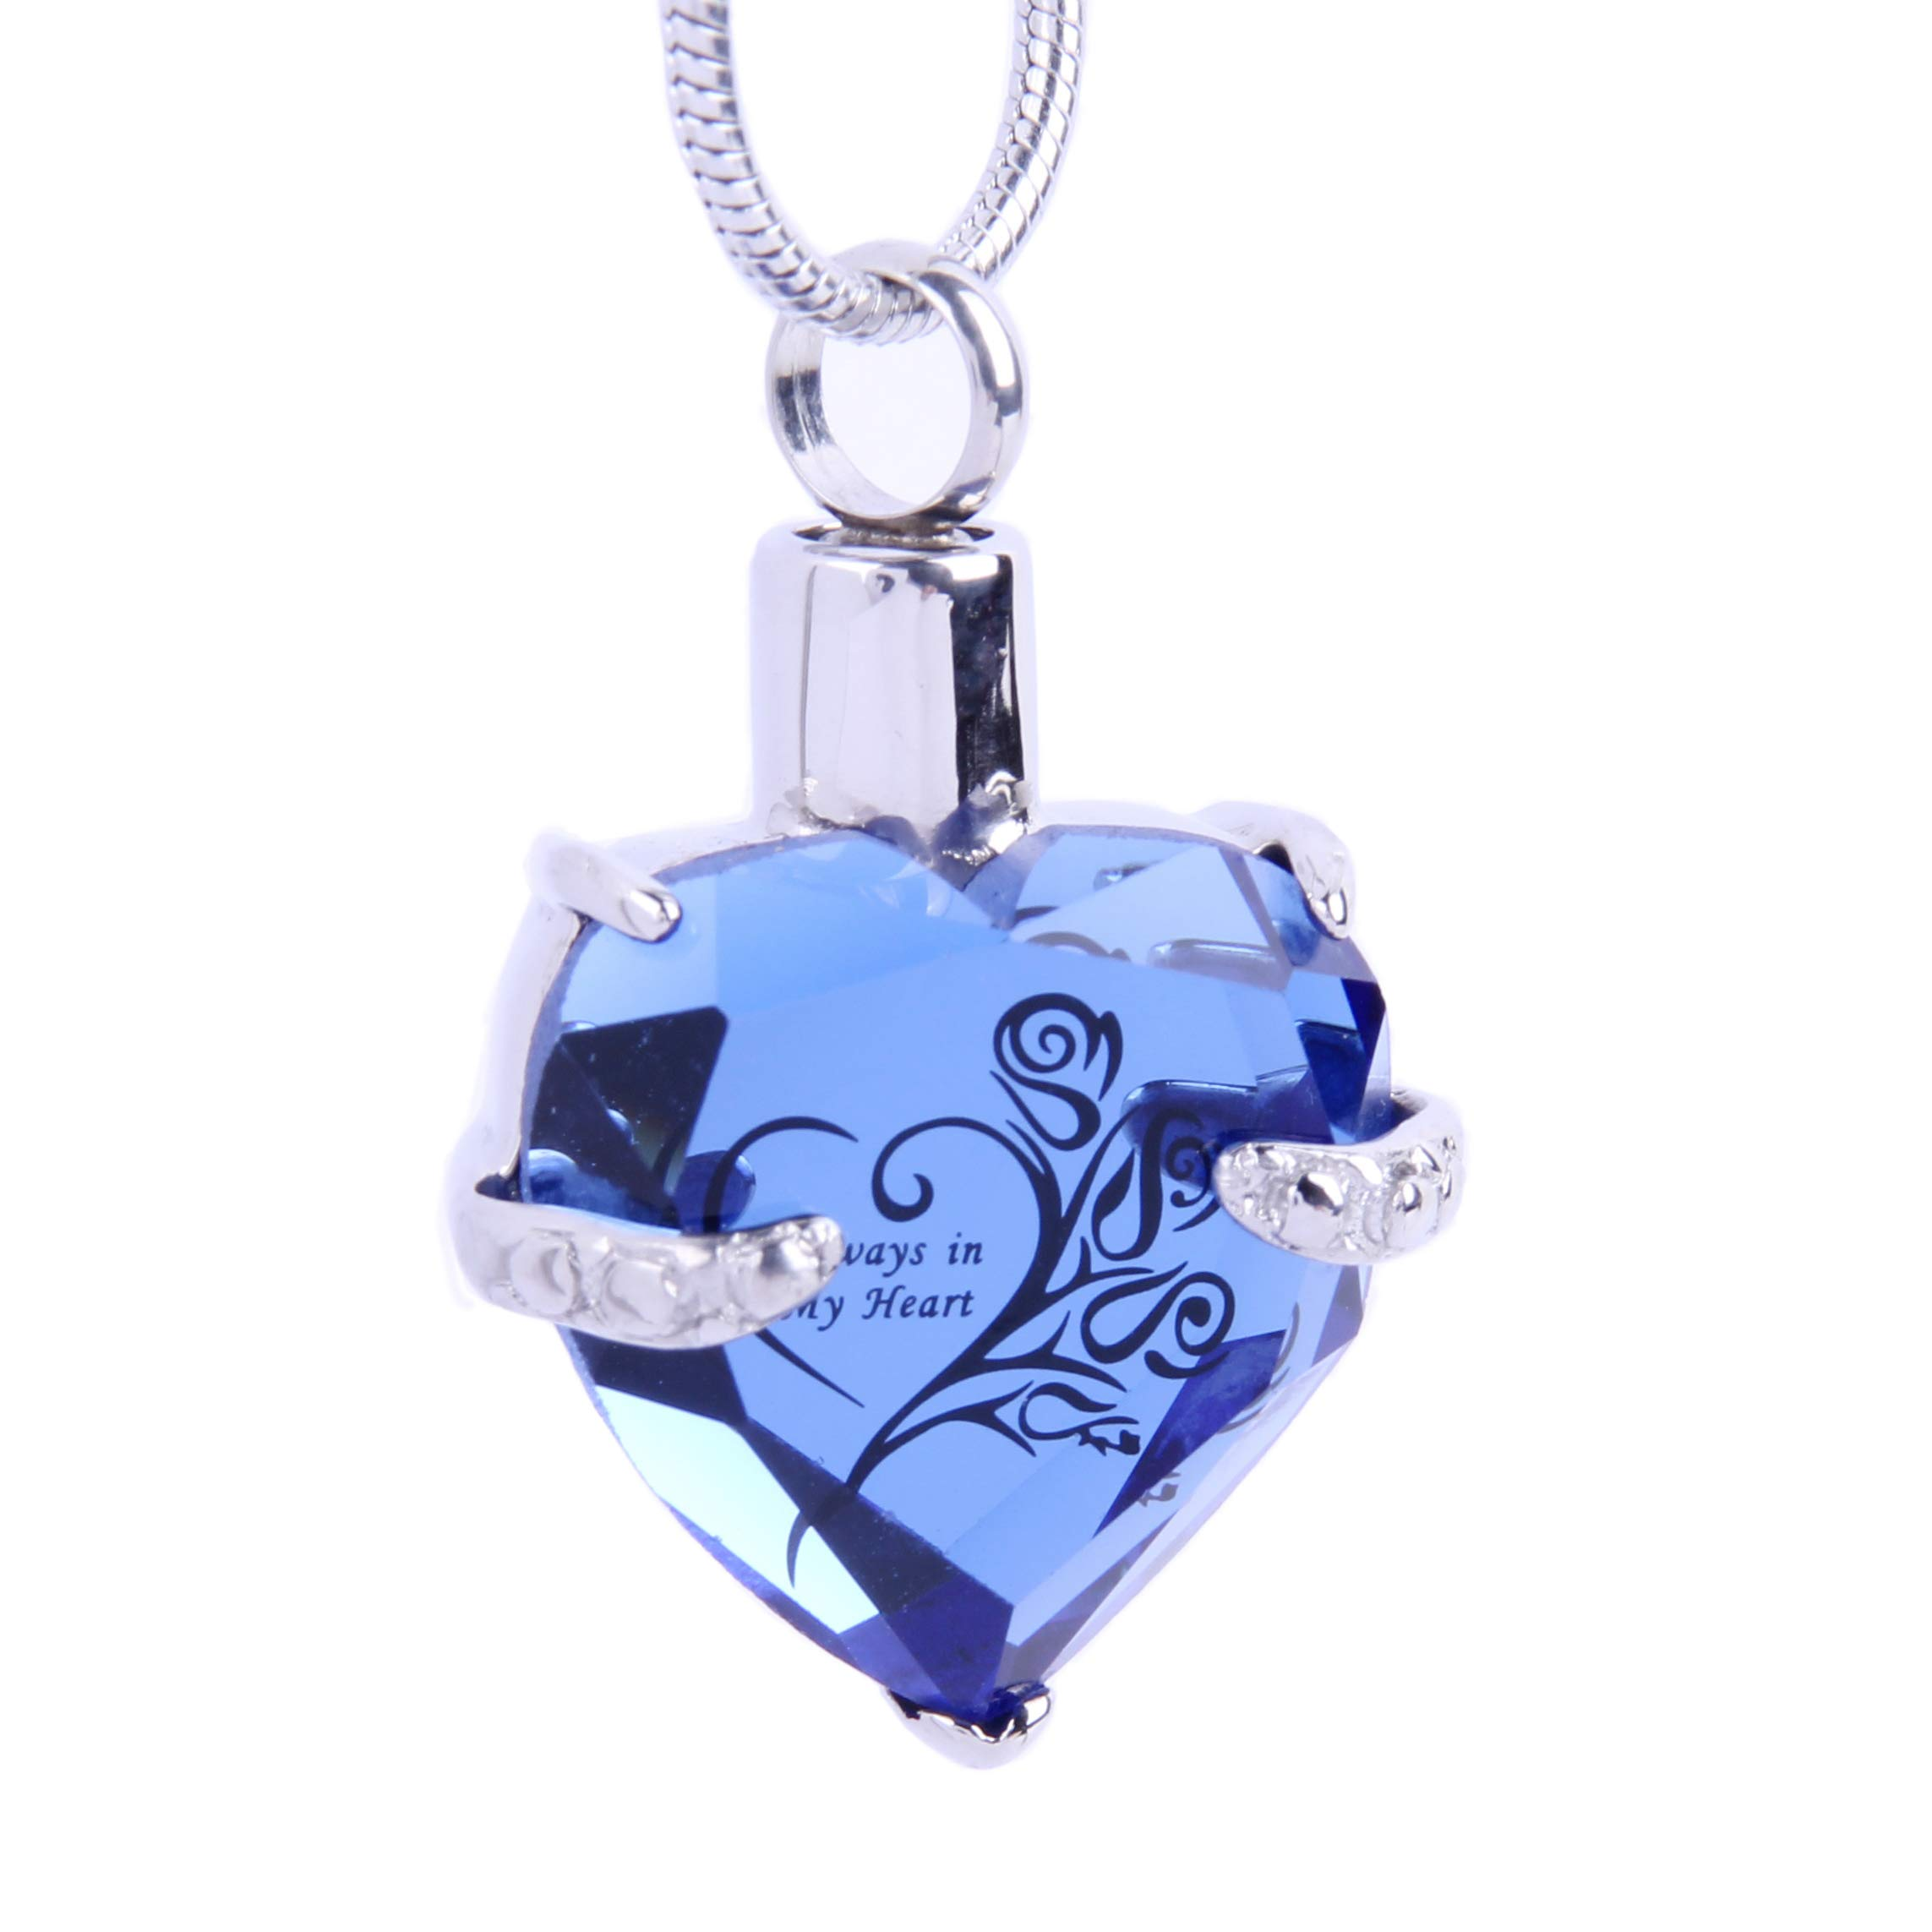 Cremation Jewelry for Ashes Always in My Heart Glass Urn Pendant Necklace +21''Snake Chain (A-Blue) by Tammy Jewelry